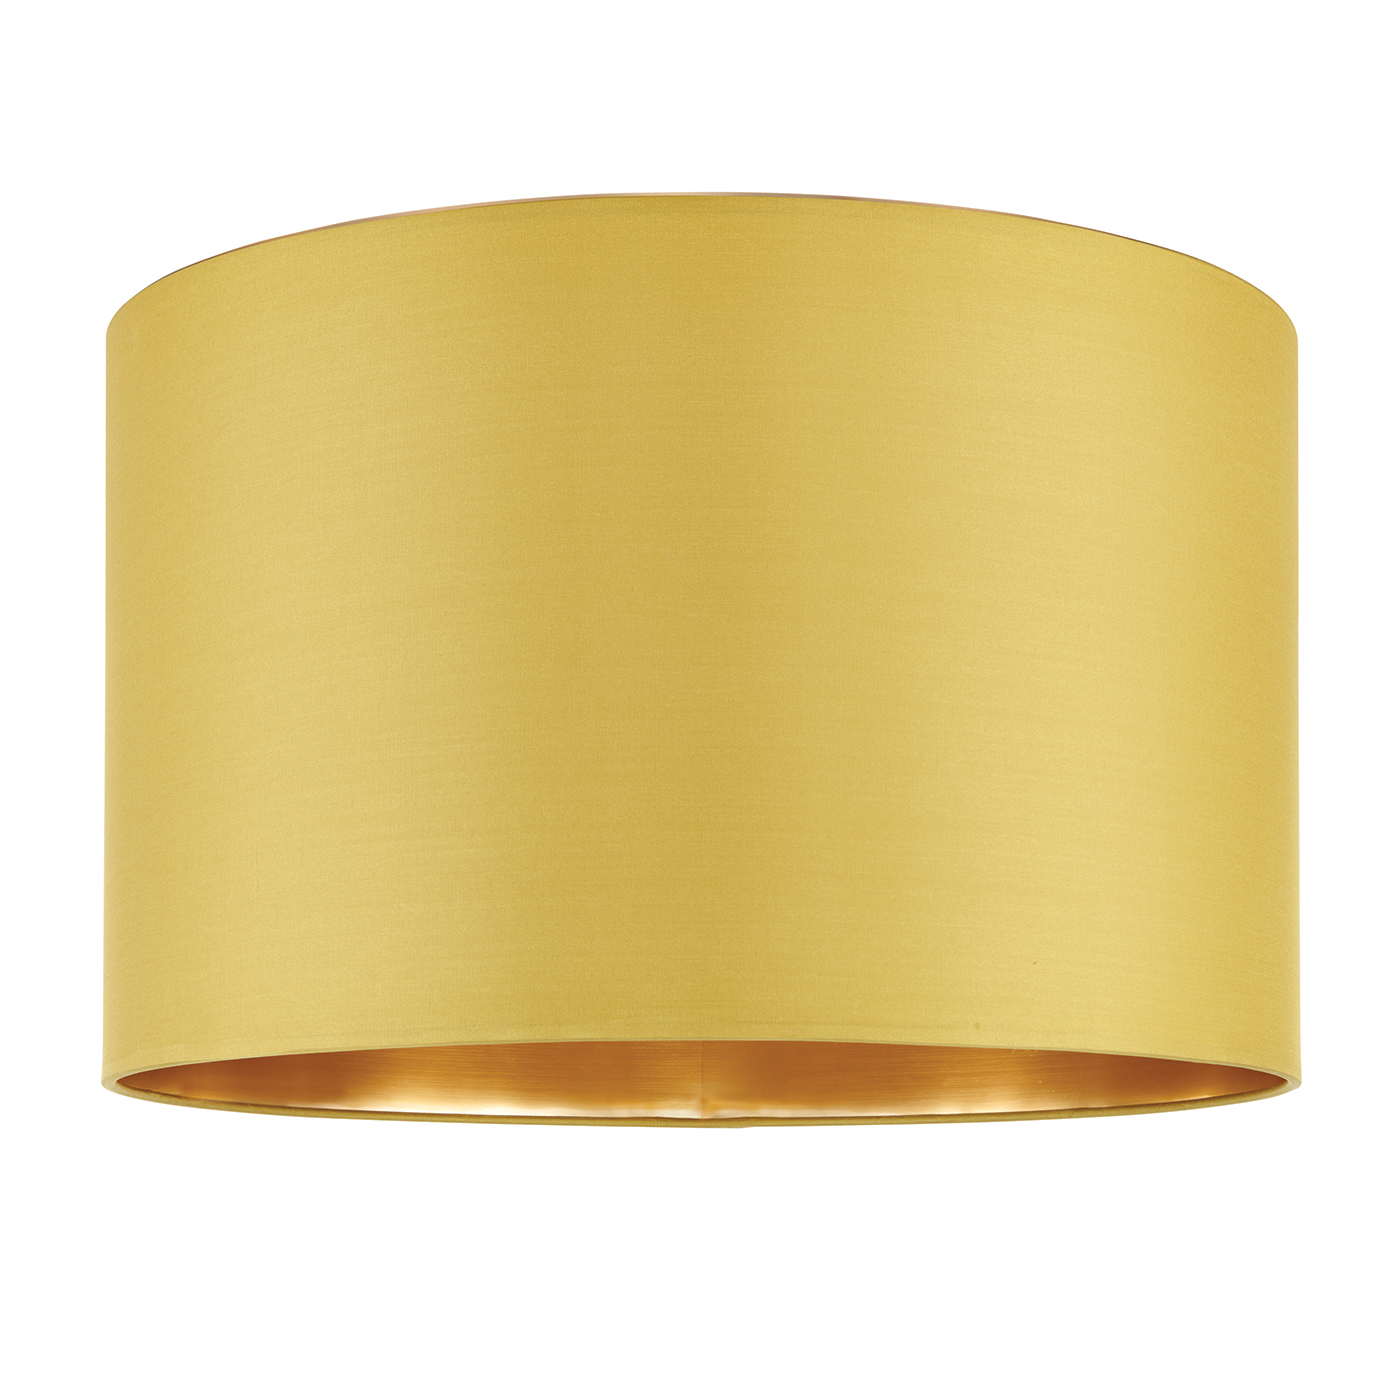 Endon Boutique lampshade 16 inch Chartreuse silk brushed gold 250mm H x 400mm D Thumbnail 1